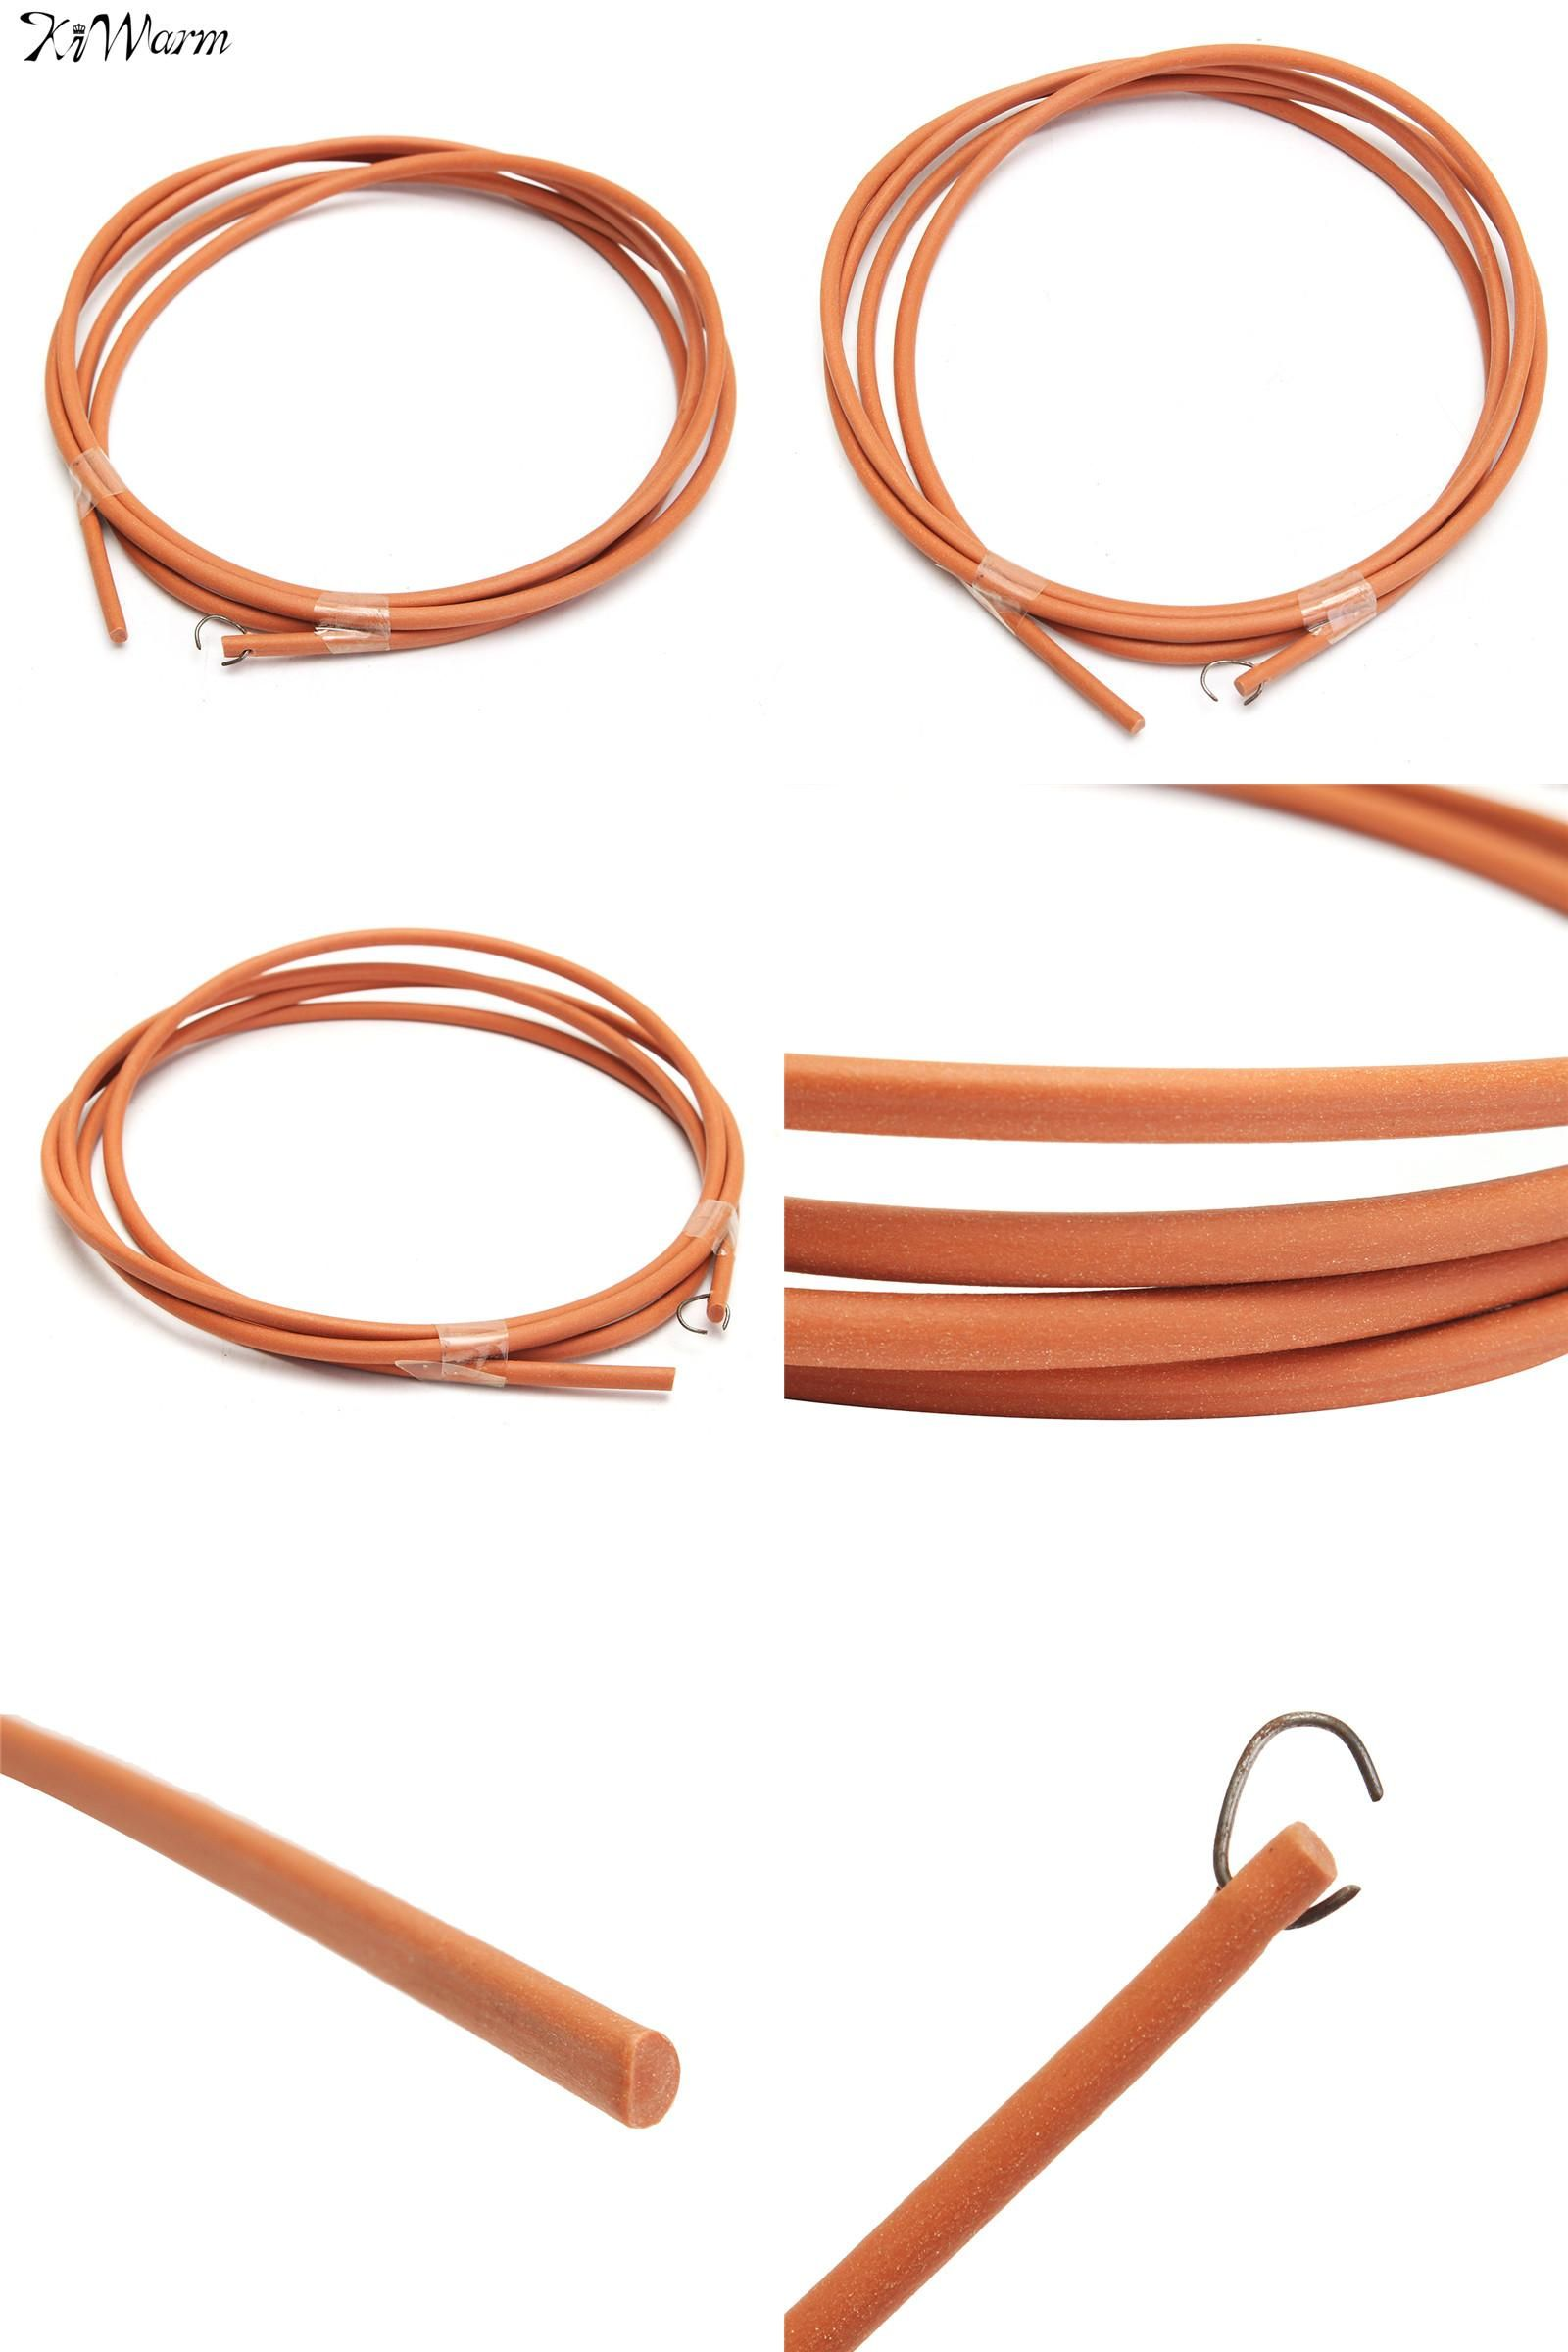 [Visit to Buy] Kiwarm 180CM 5.5MM Bold Sewing Machine Leather Treadle Belt Parts Peddle Cowhide Belting for Home Sewing Machines Tools #Advertisement